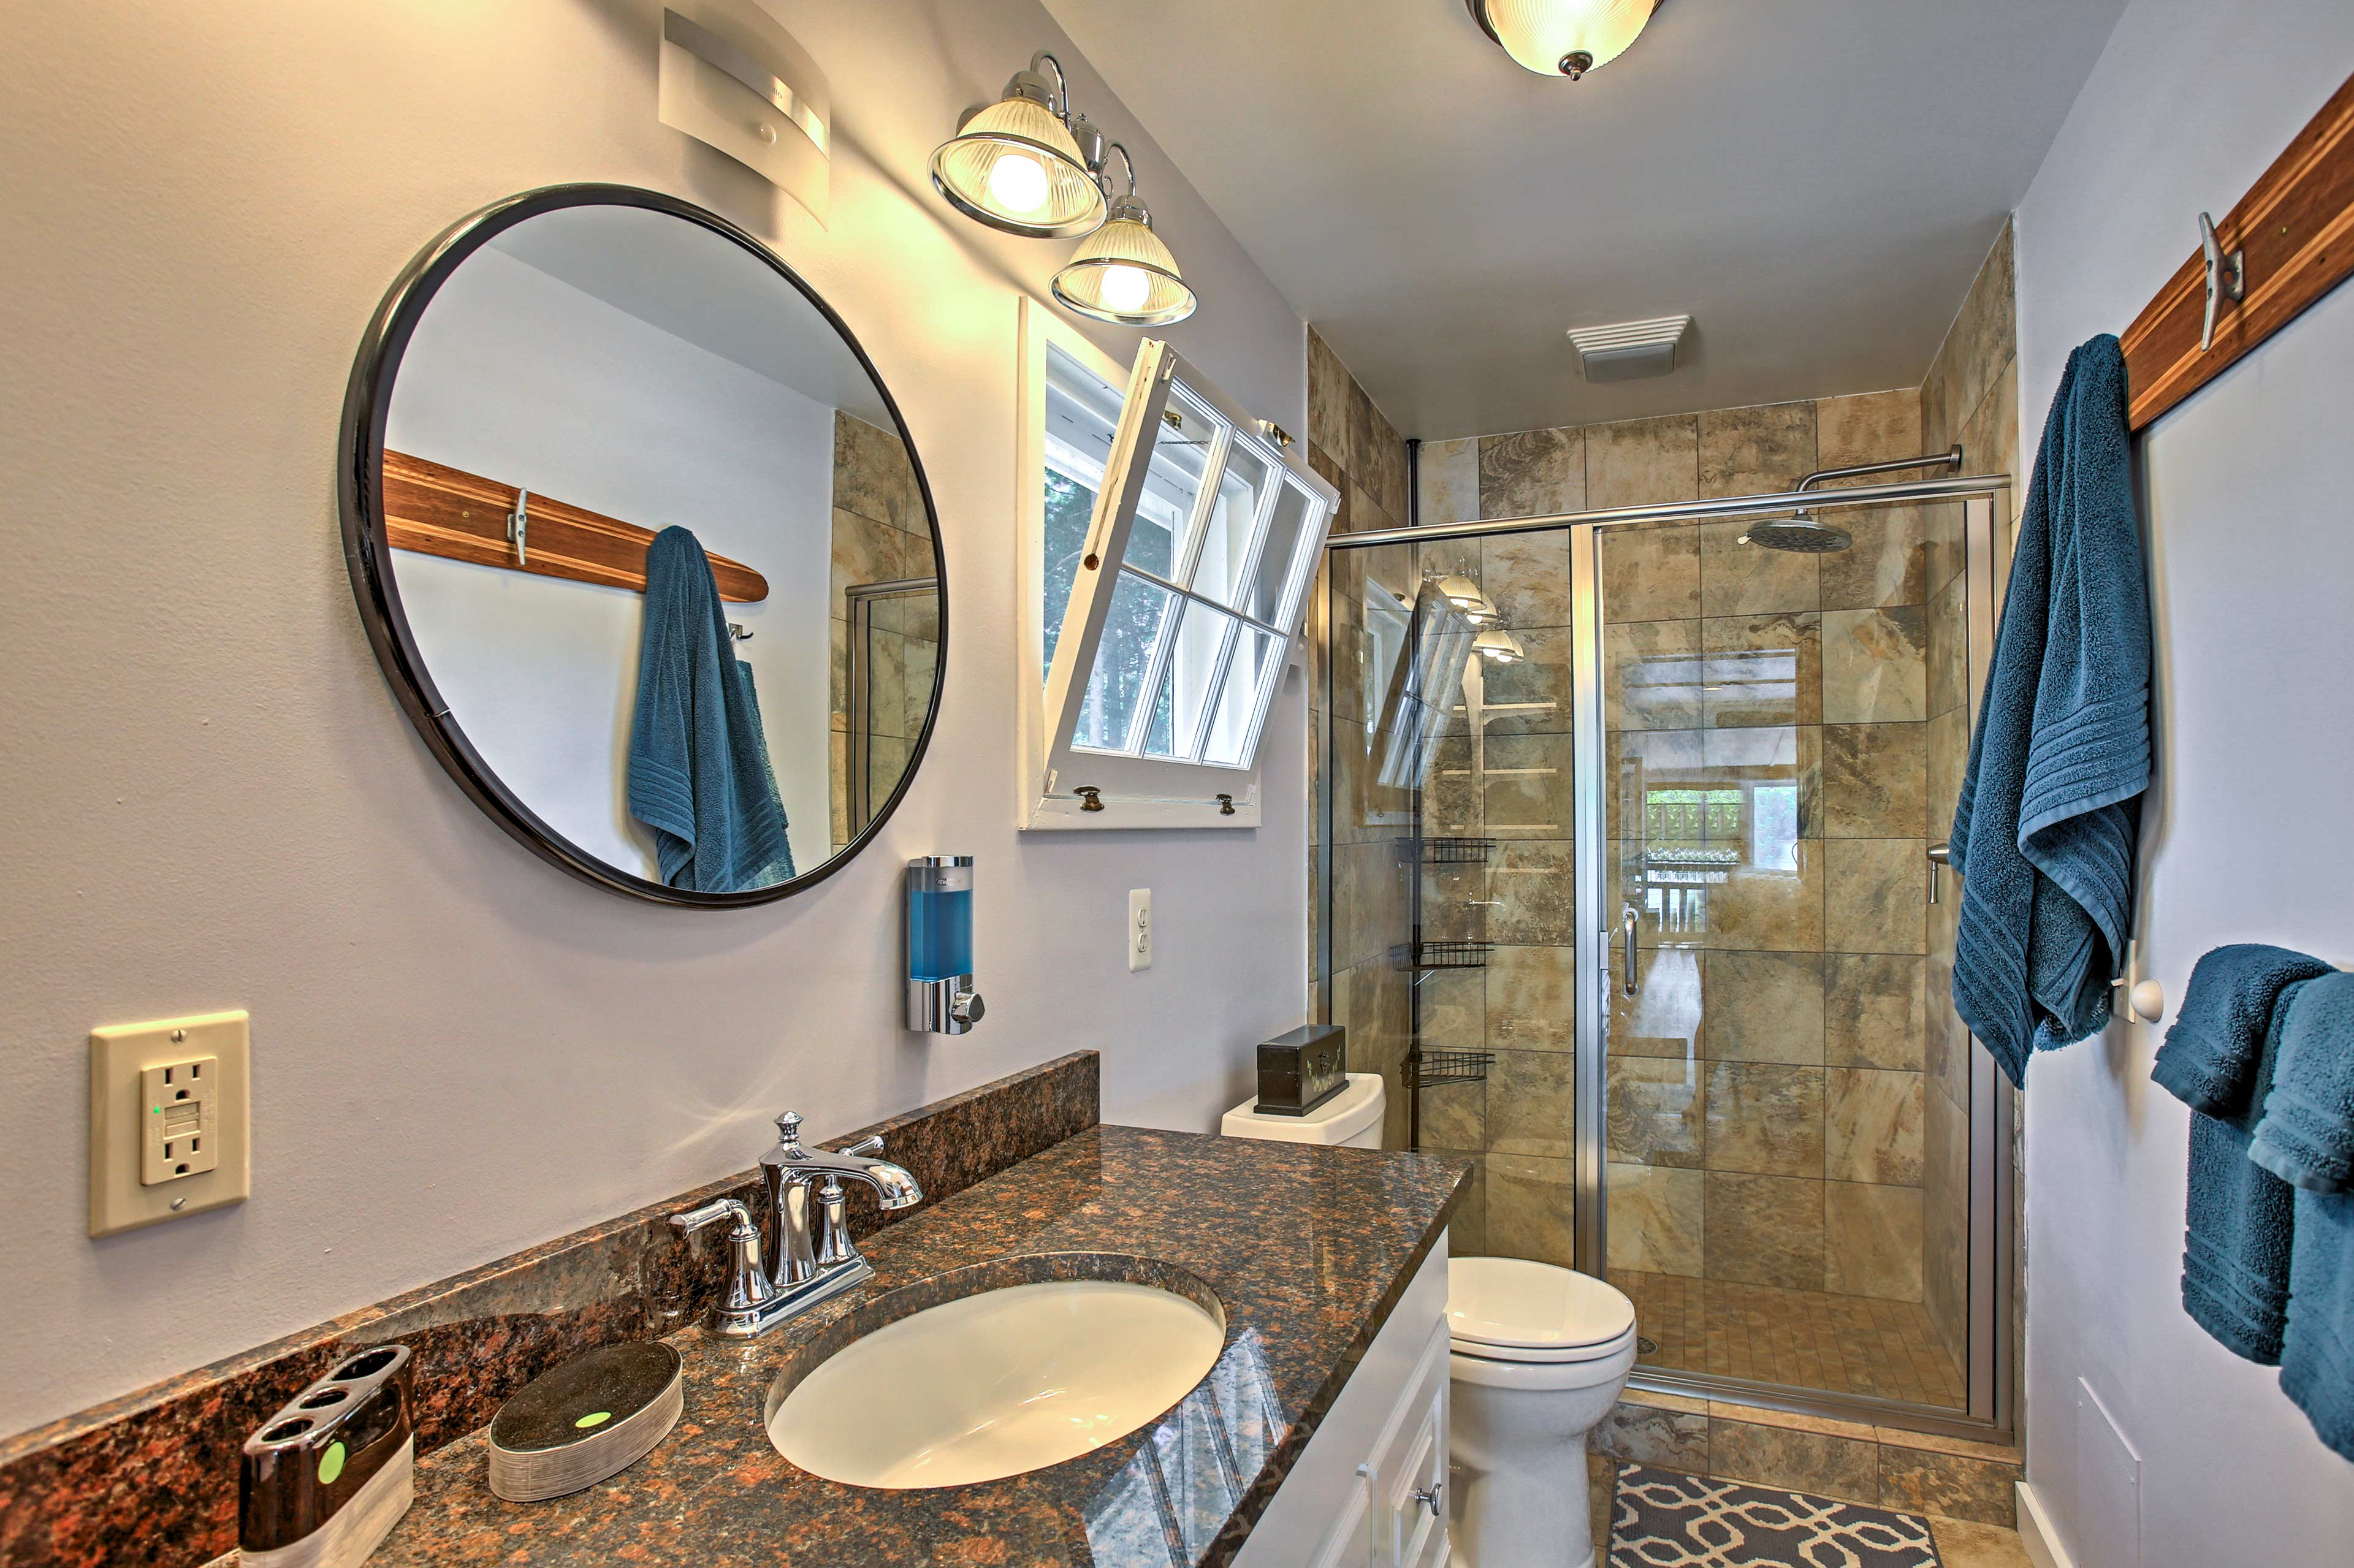 Rinse off the day in the newly updated bathroom.